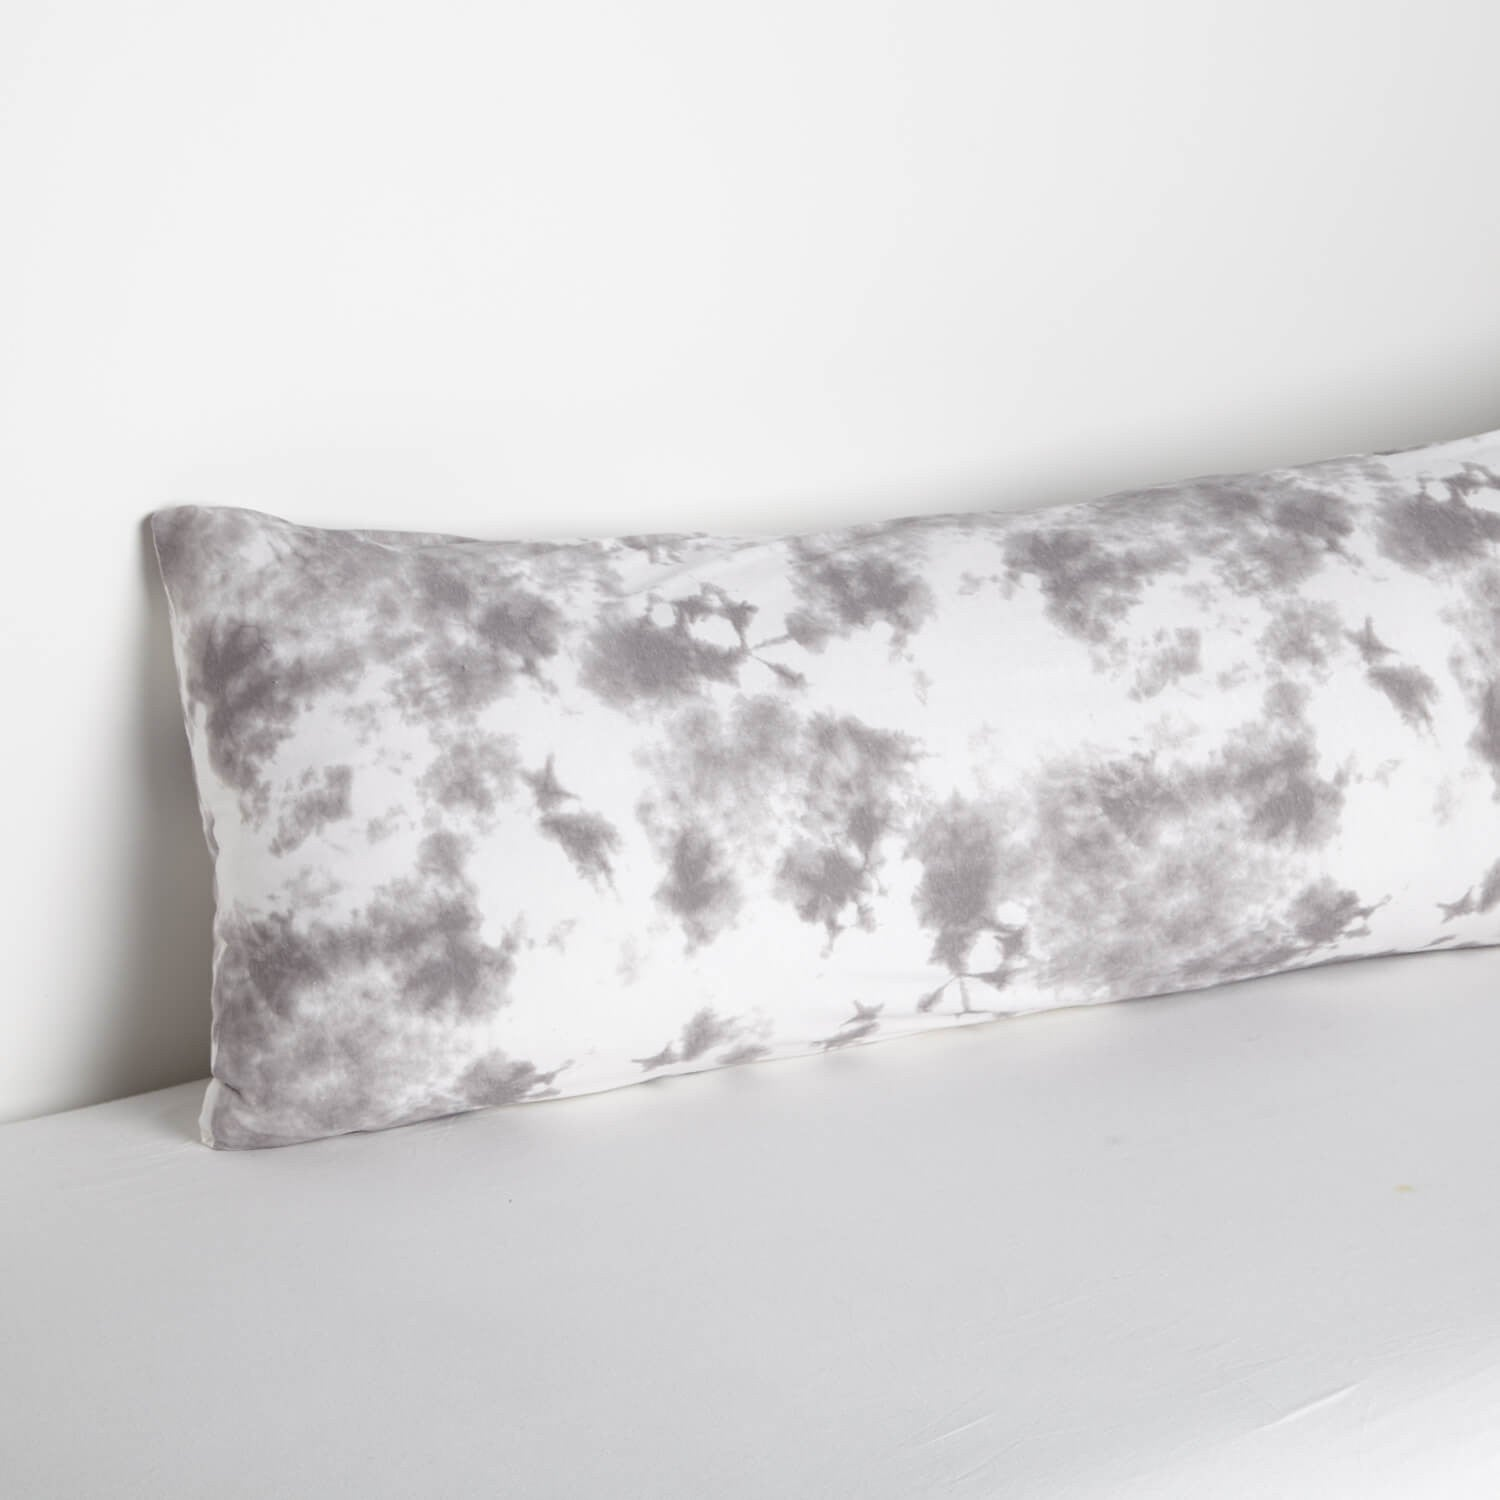 Body Pillow Covers - Dorm Bedding - College Bedding | Dormify